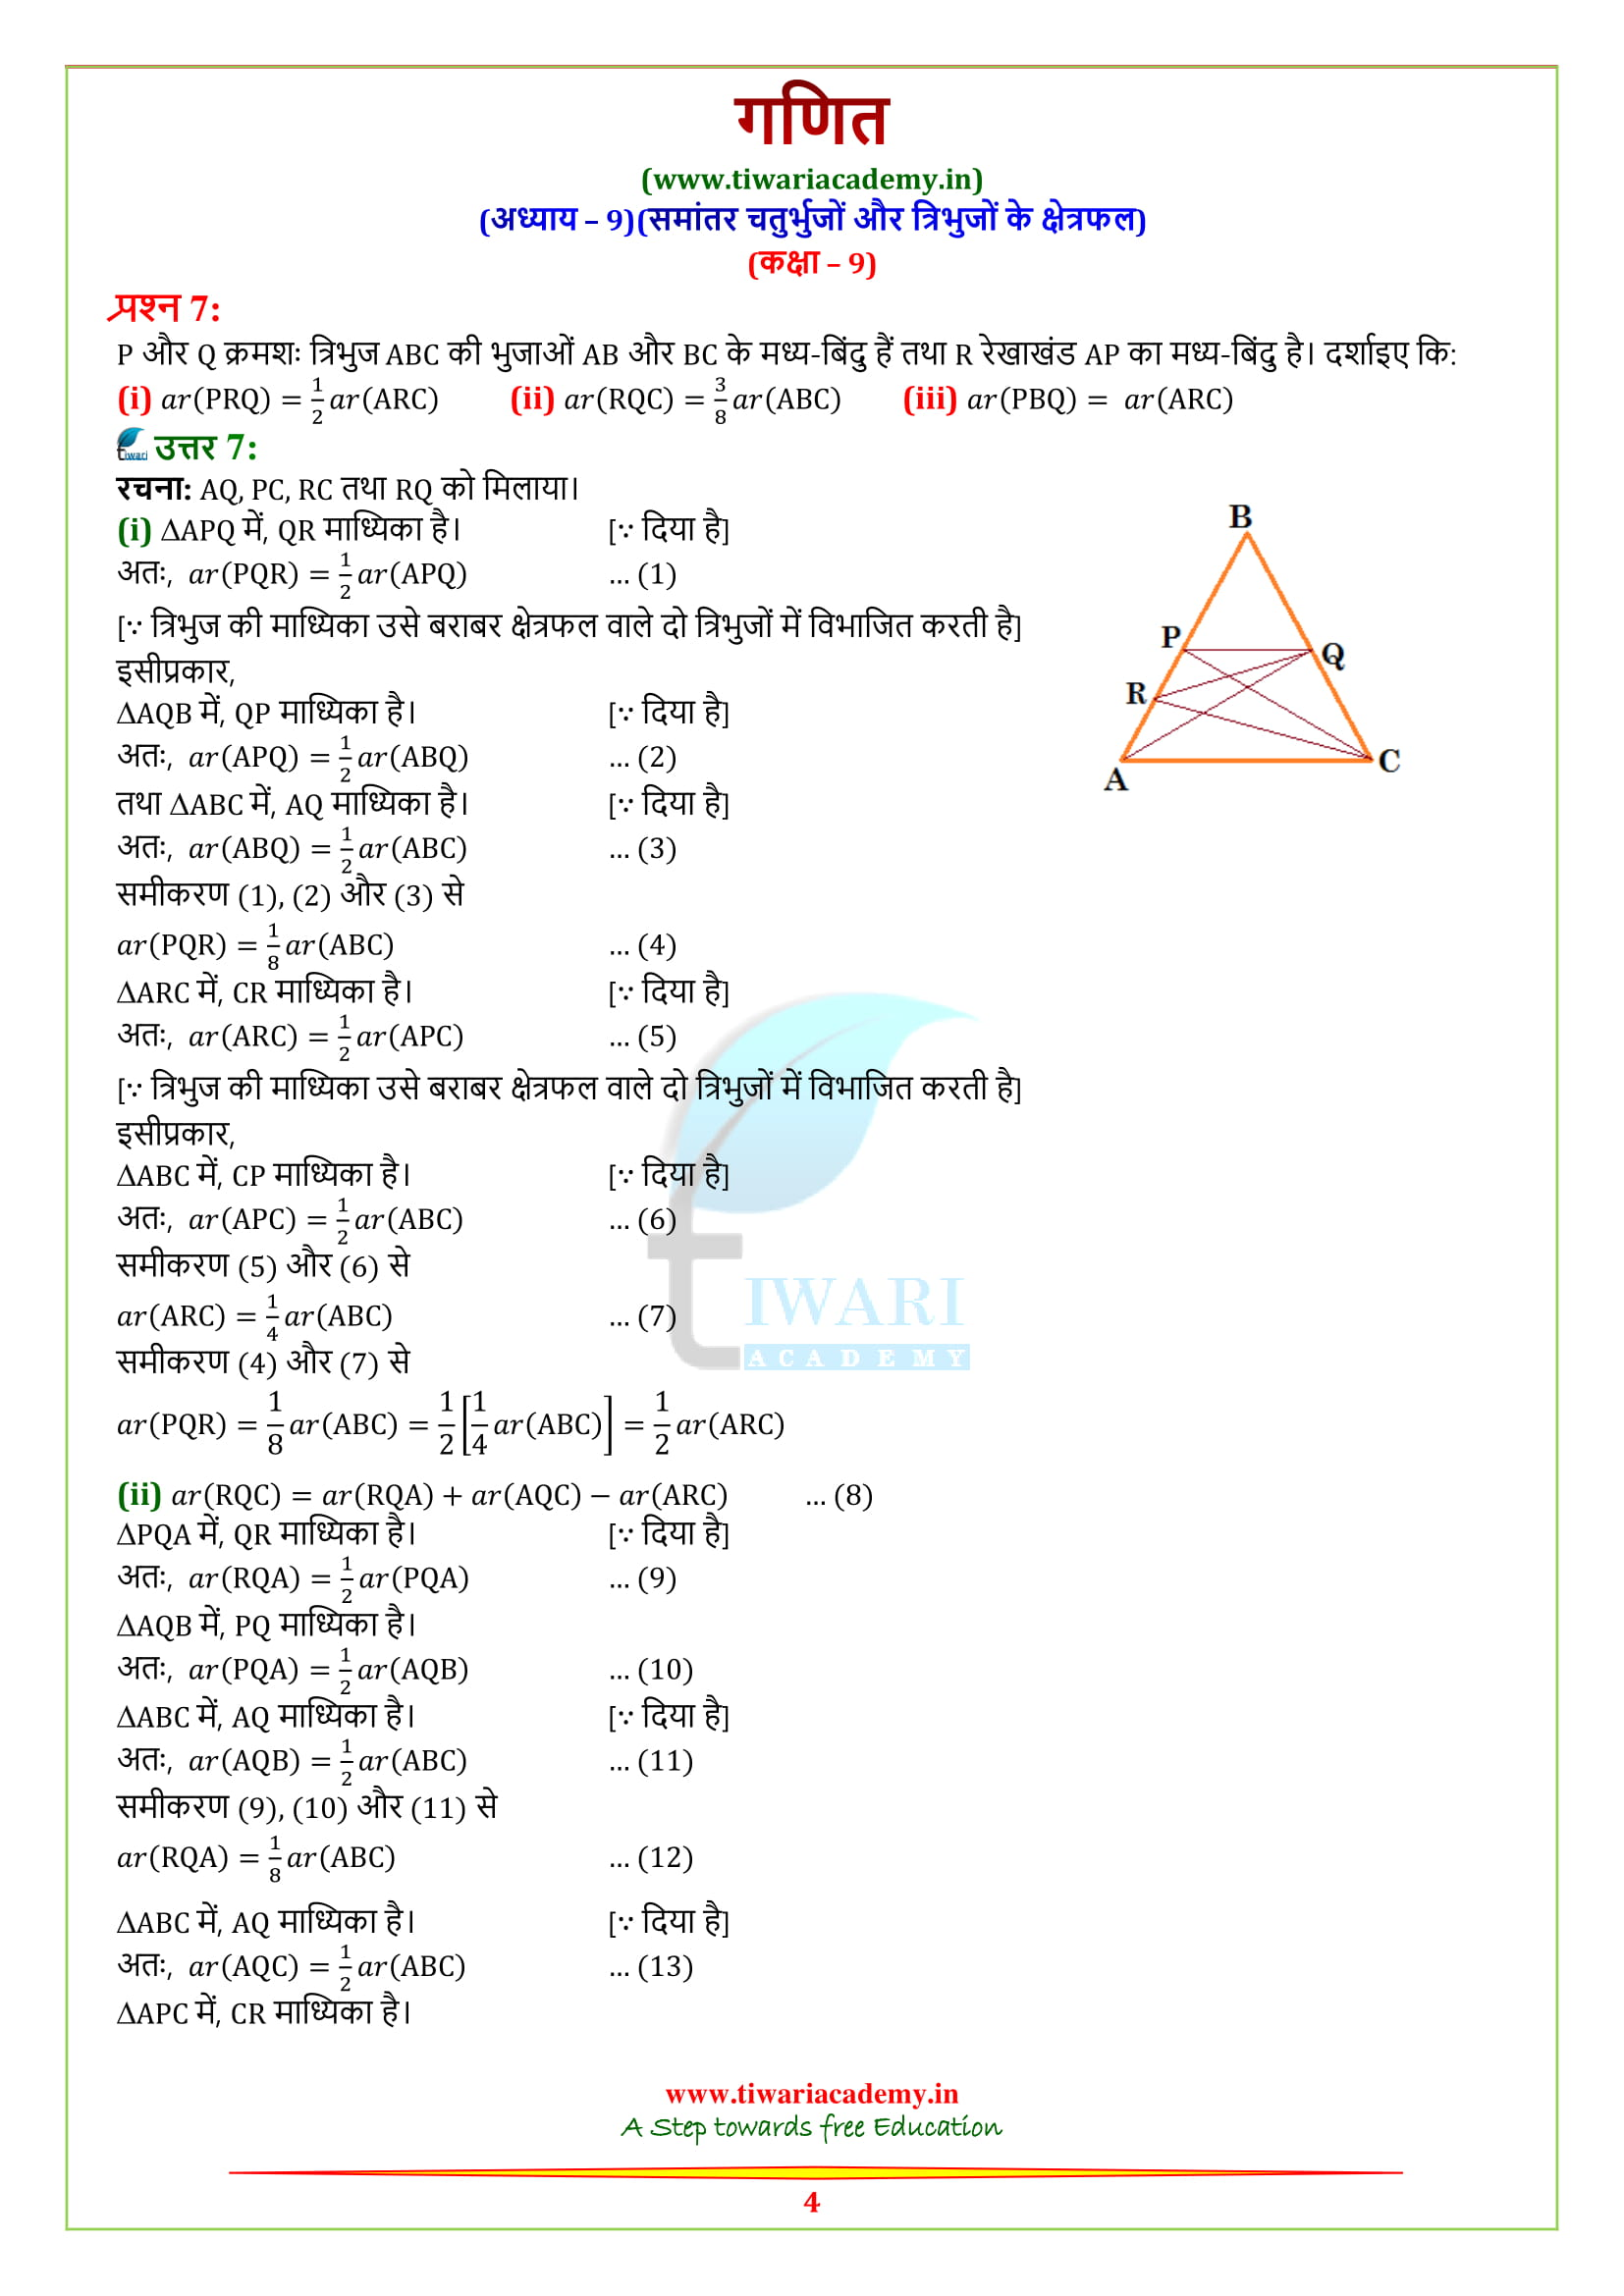 NCERT Solutions for class 9 Maths exercise 9.4 updated for 2018-19